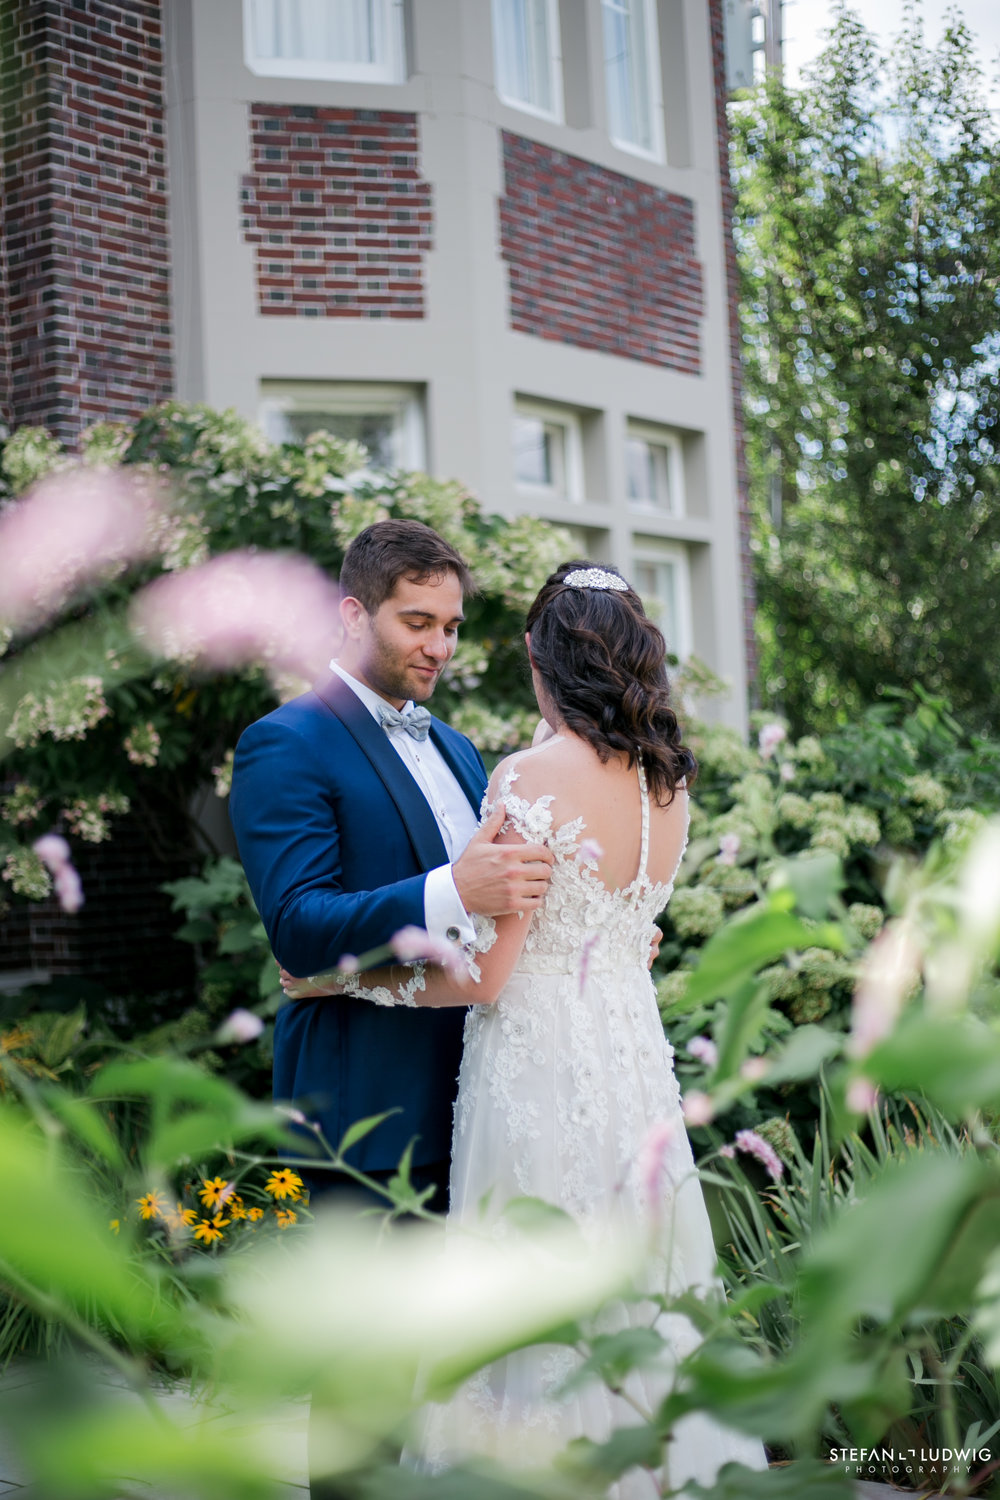 Heather and Andrew Wedding Photography ay Meadow Ridge Farm in Hudson NY by Stefan Ludwig Photography-36.jpg